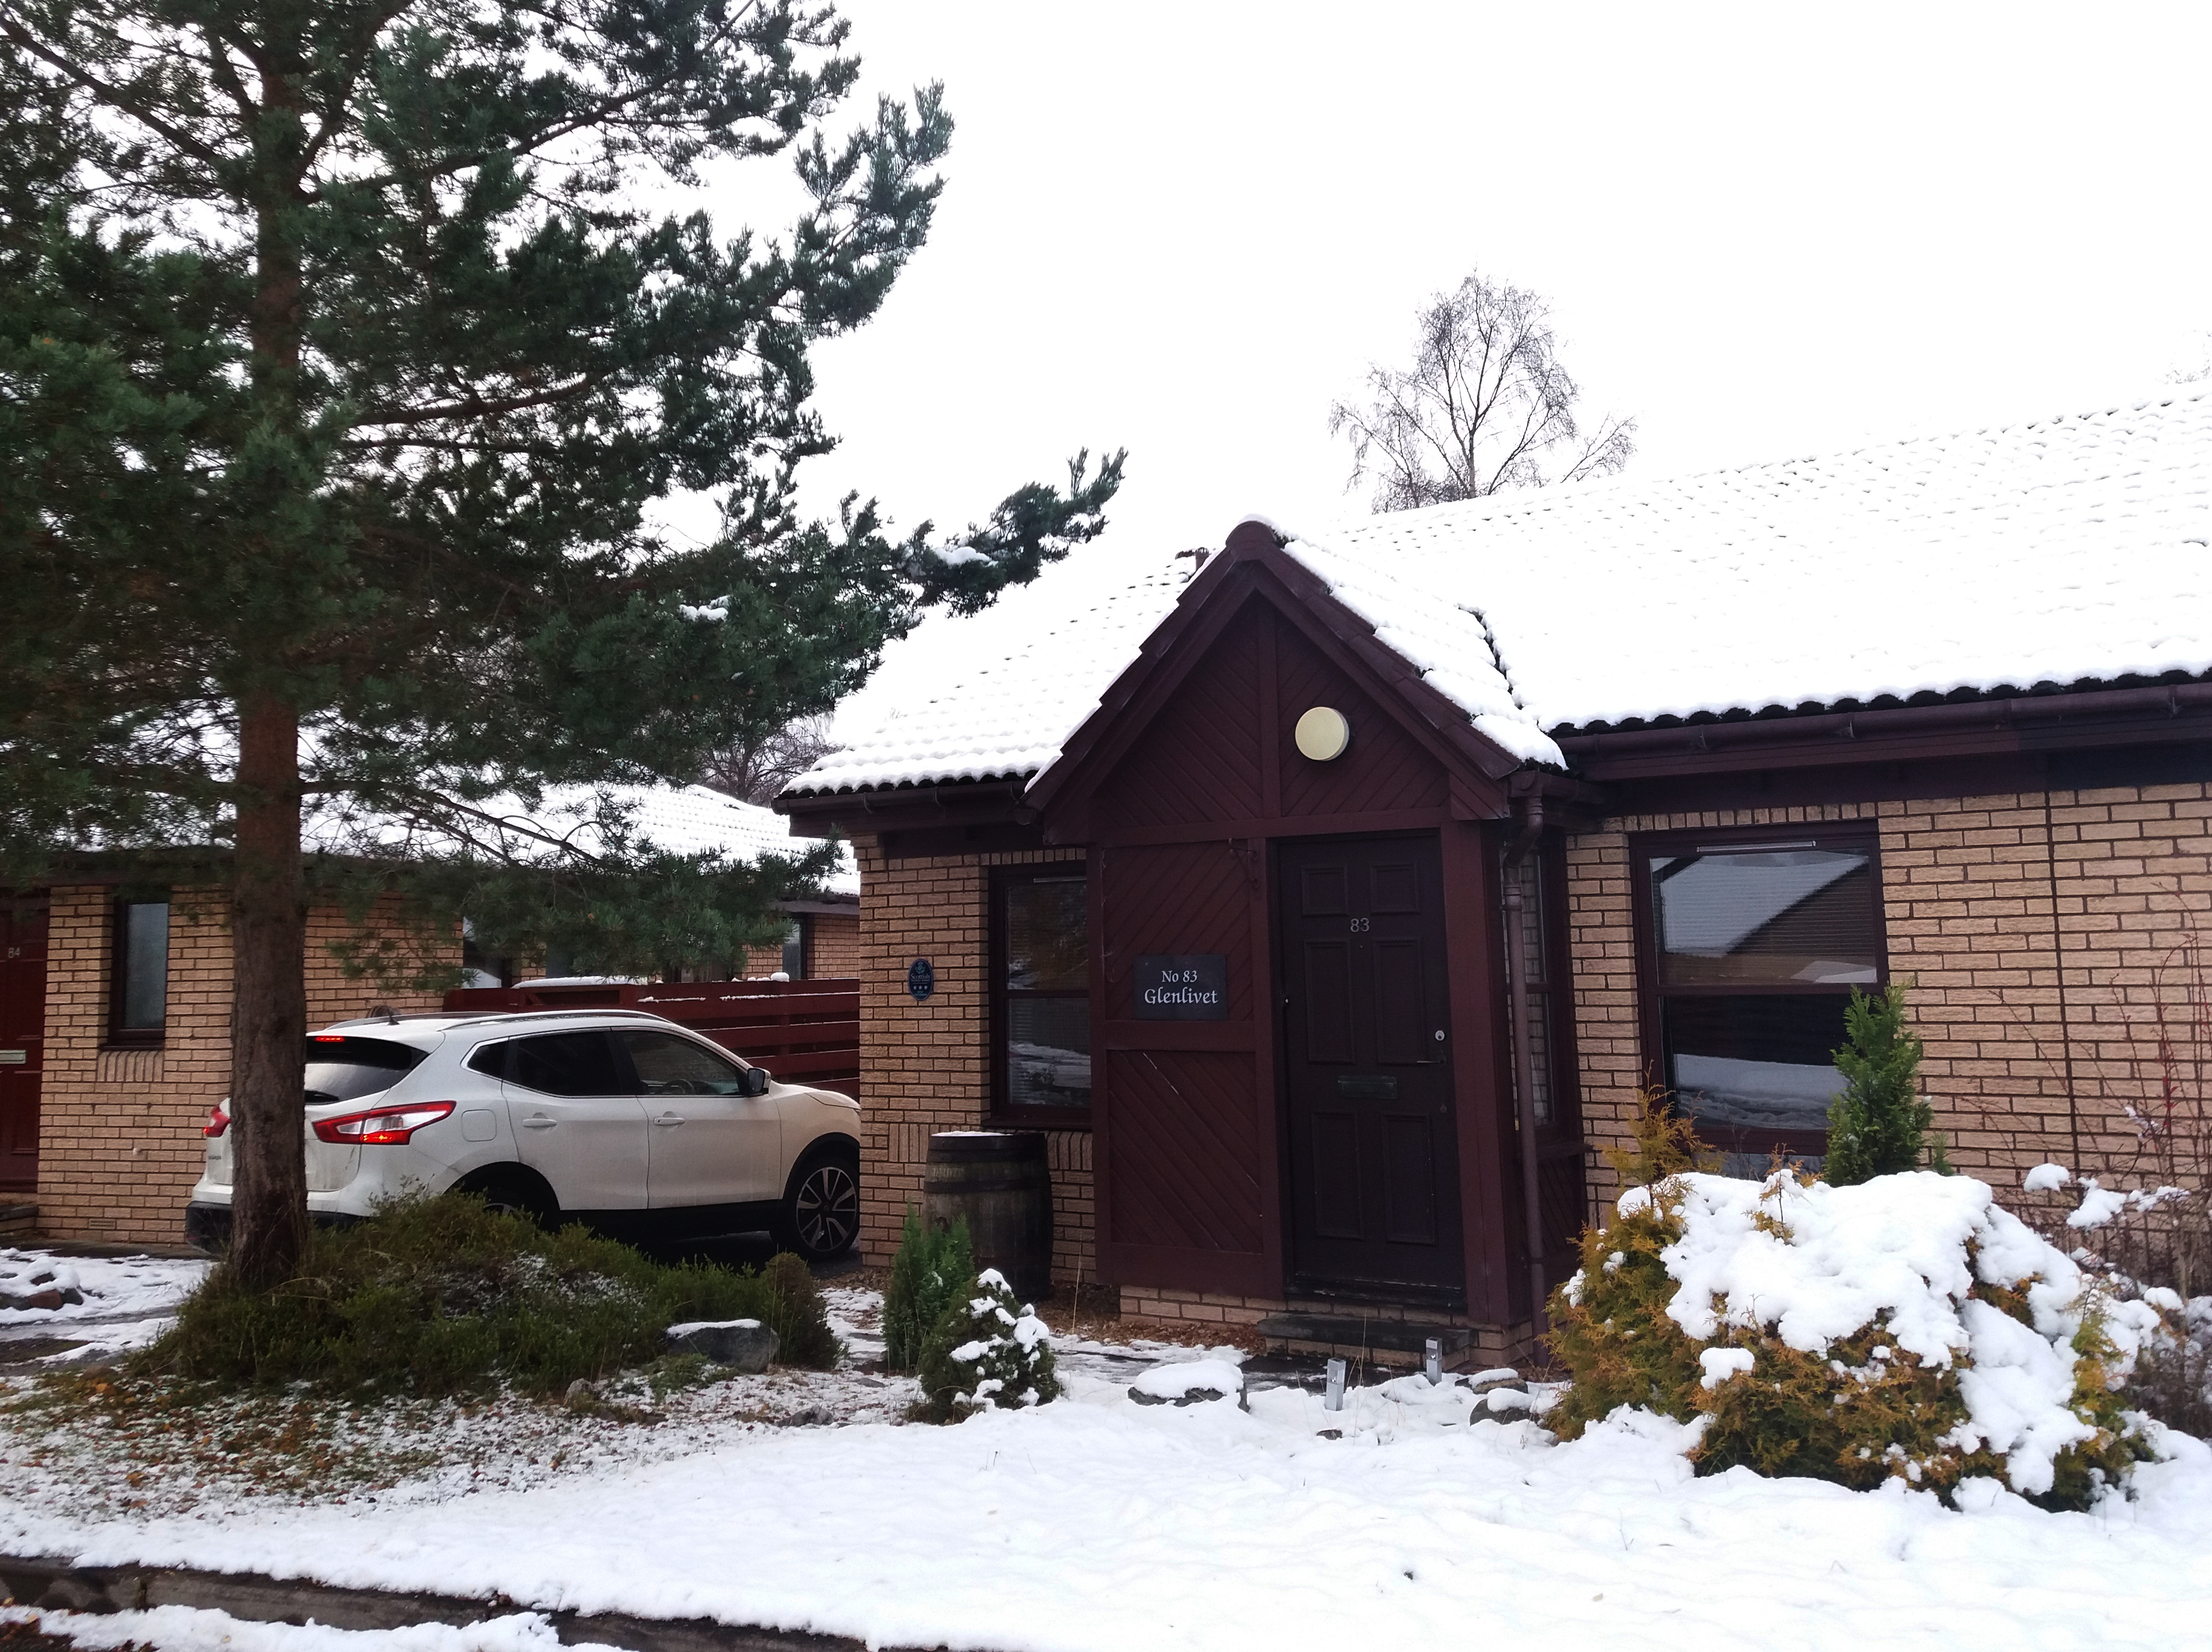 Glenlivet Lodge is the perfect accomodation for a family holiday, skiing trips or just a short escape to the Highlands. Situated in the Silverglades area in Aaviemore, it's just a short walk from here to the village centre.